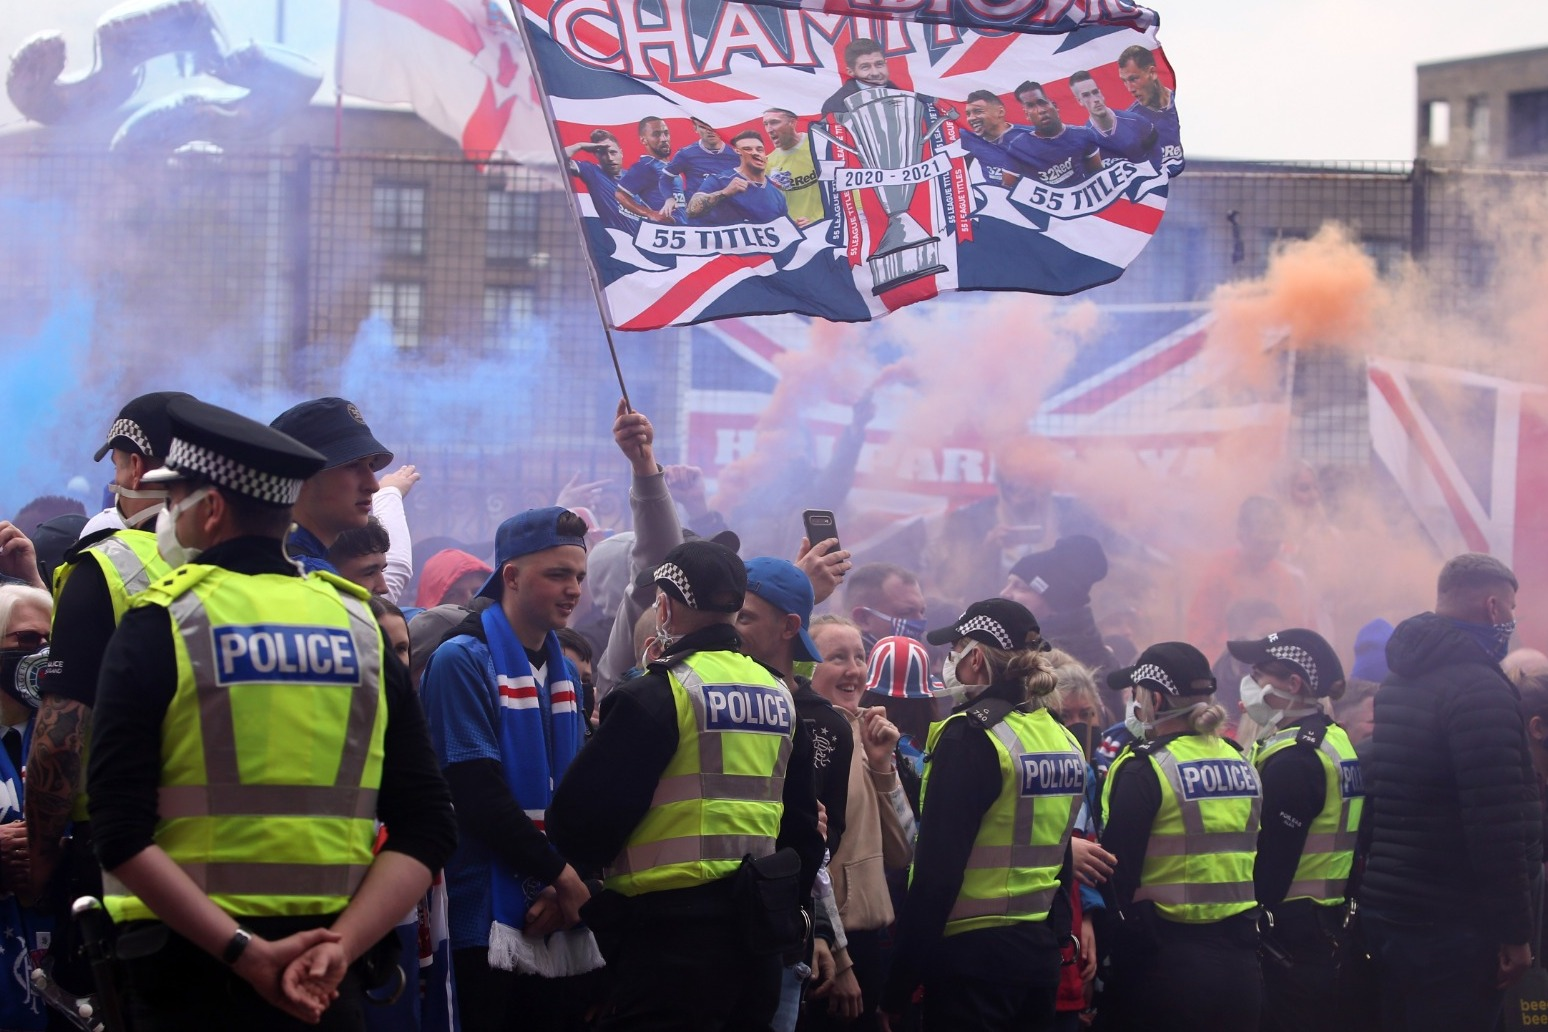 Thousands of Rangers fans gather at Ibrox ahead of title celebrations